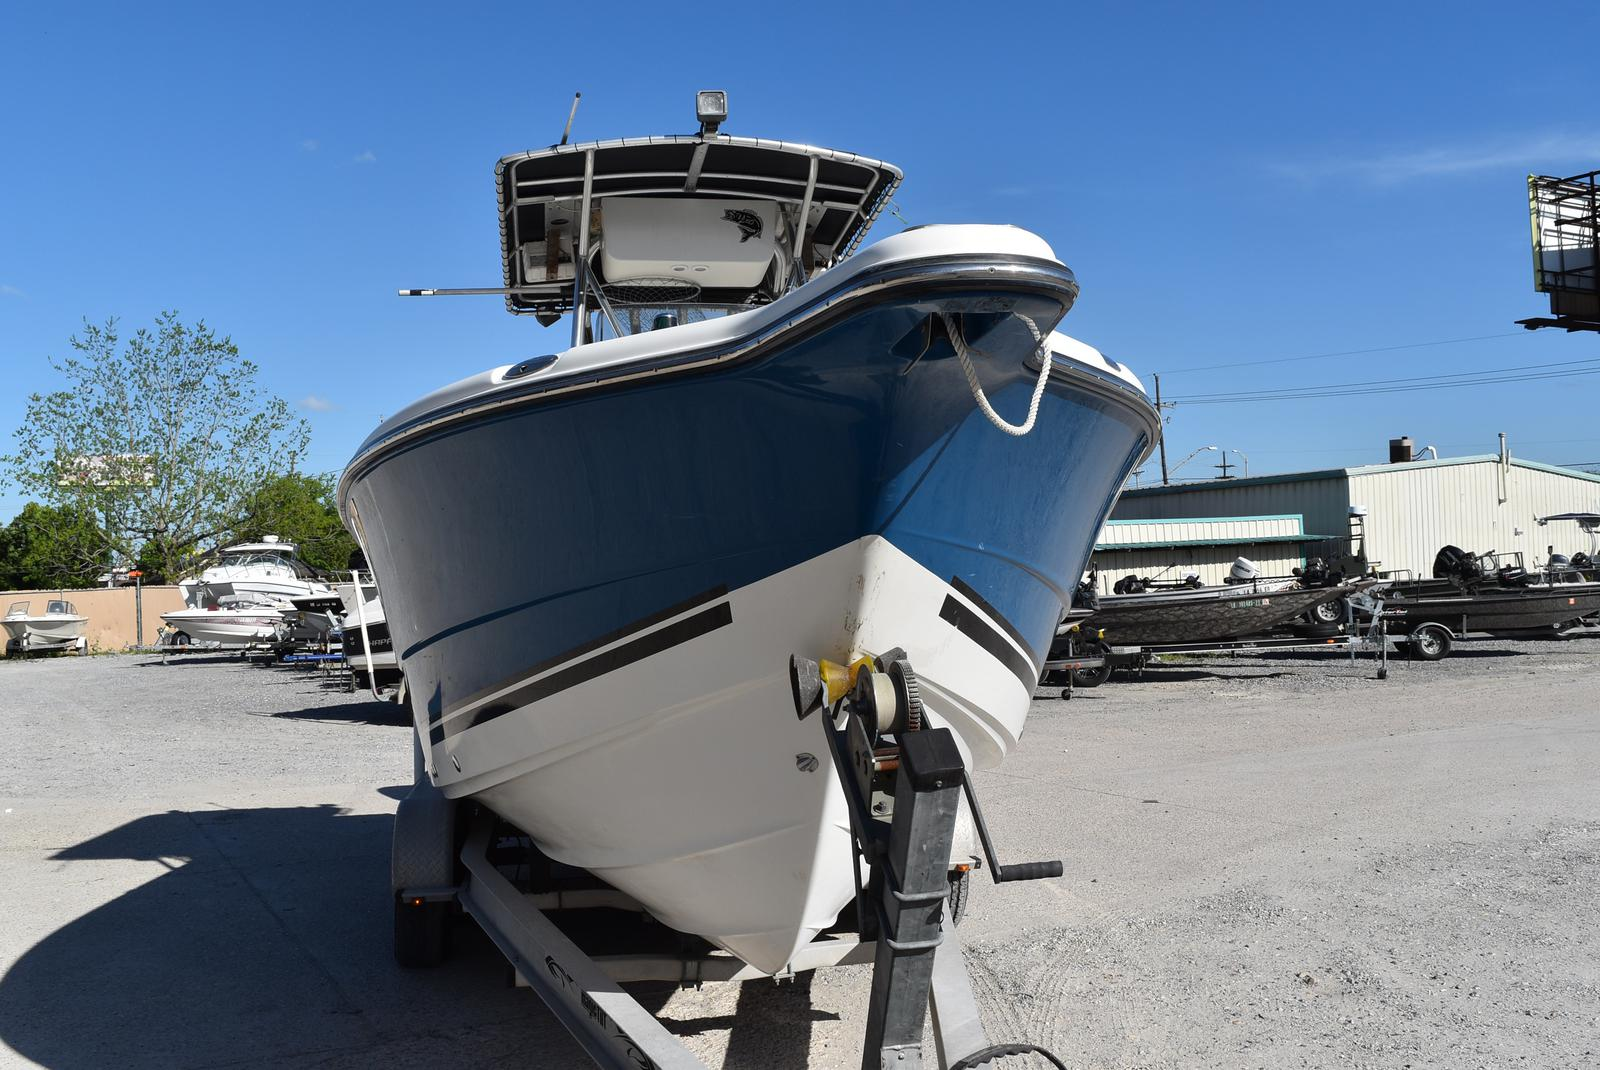 2006 Triton boat for sale, model of the boat is 2486 & Image # 19 of 24